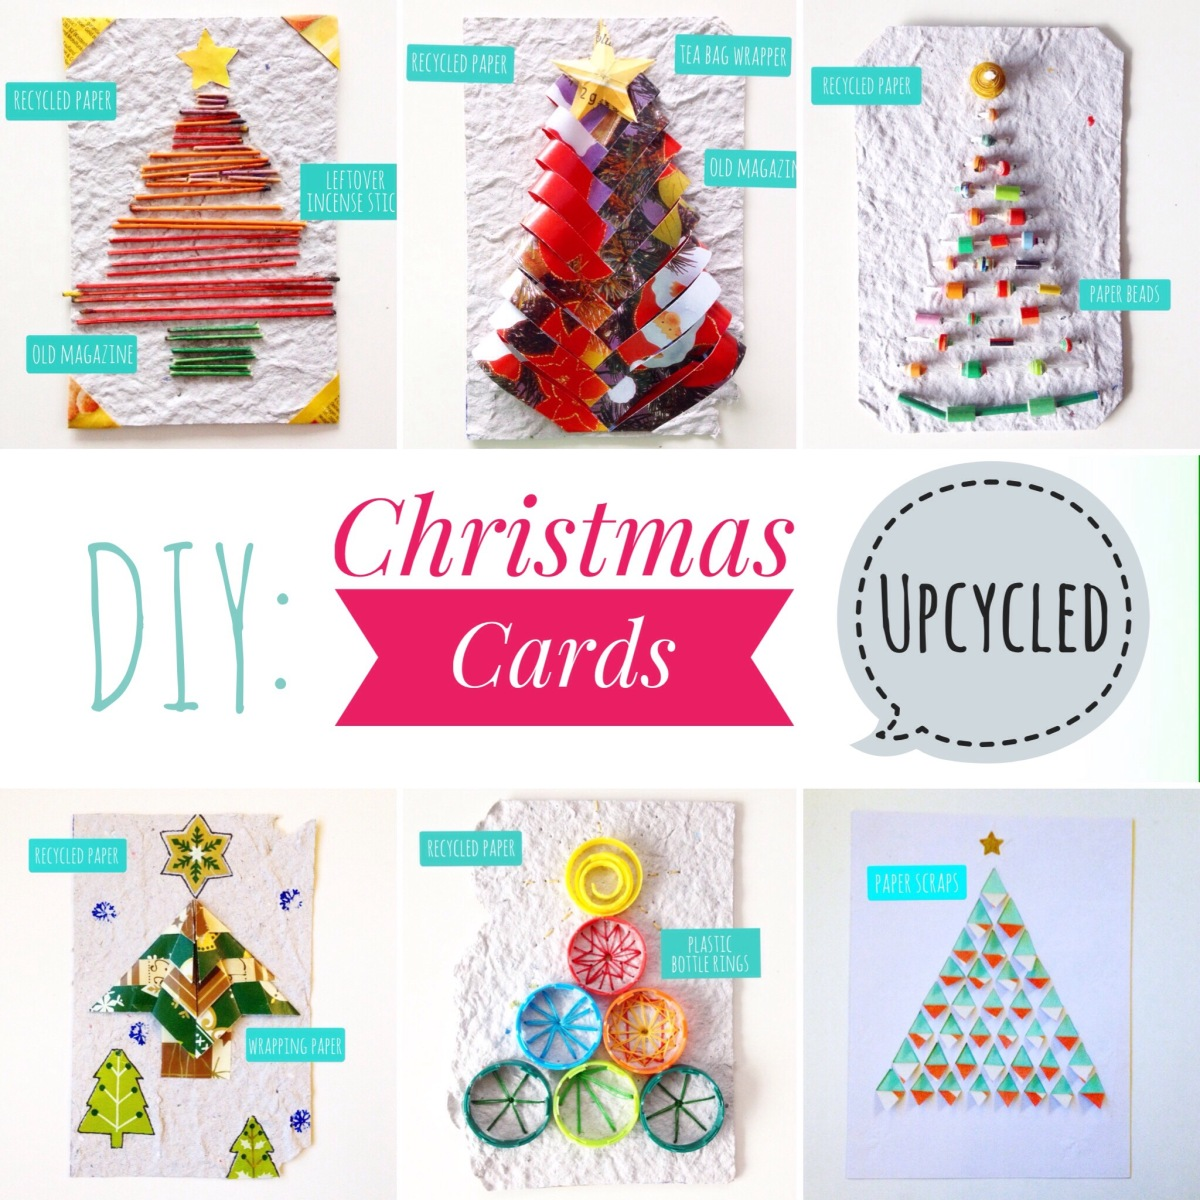 Diy recycled christmas cards ecogreenlove for How to recycle old christmas cards